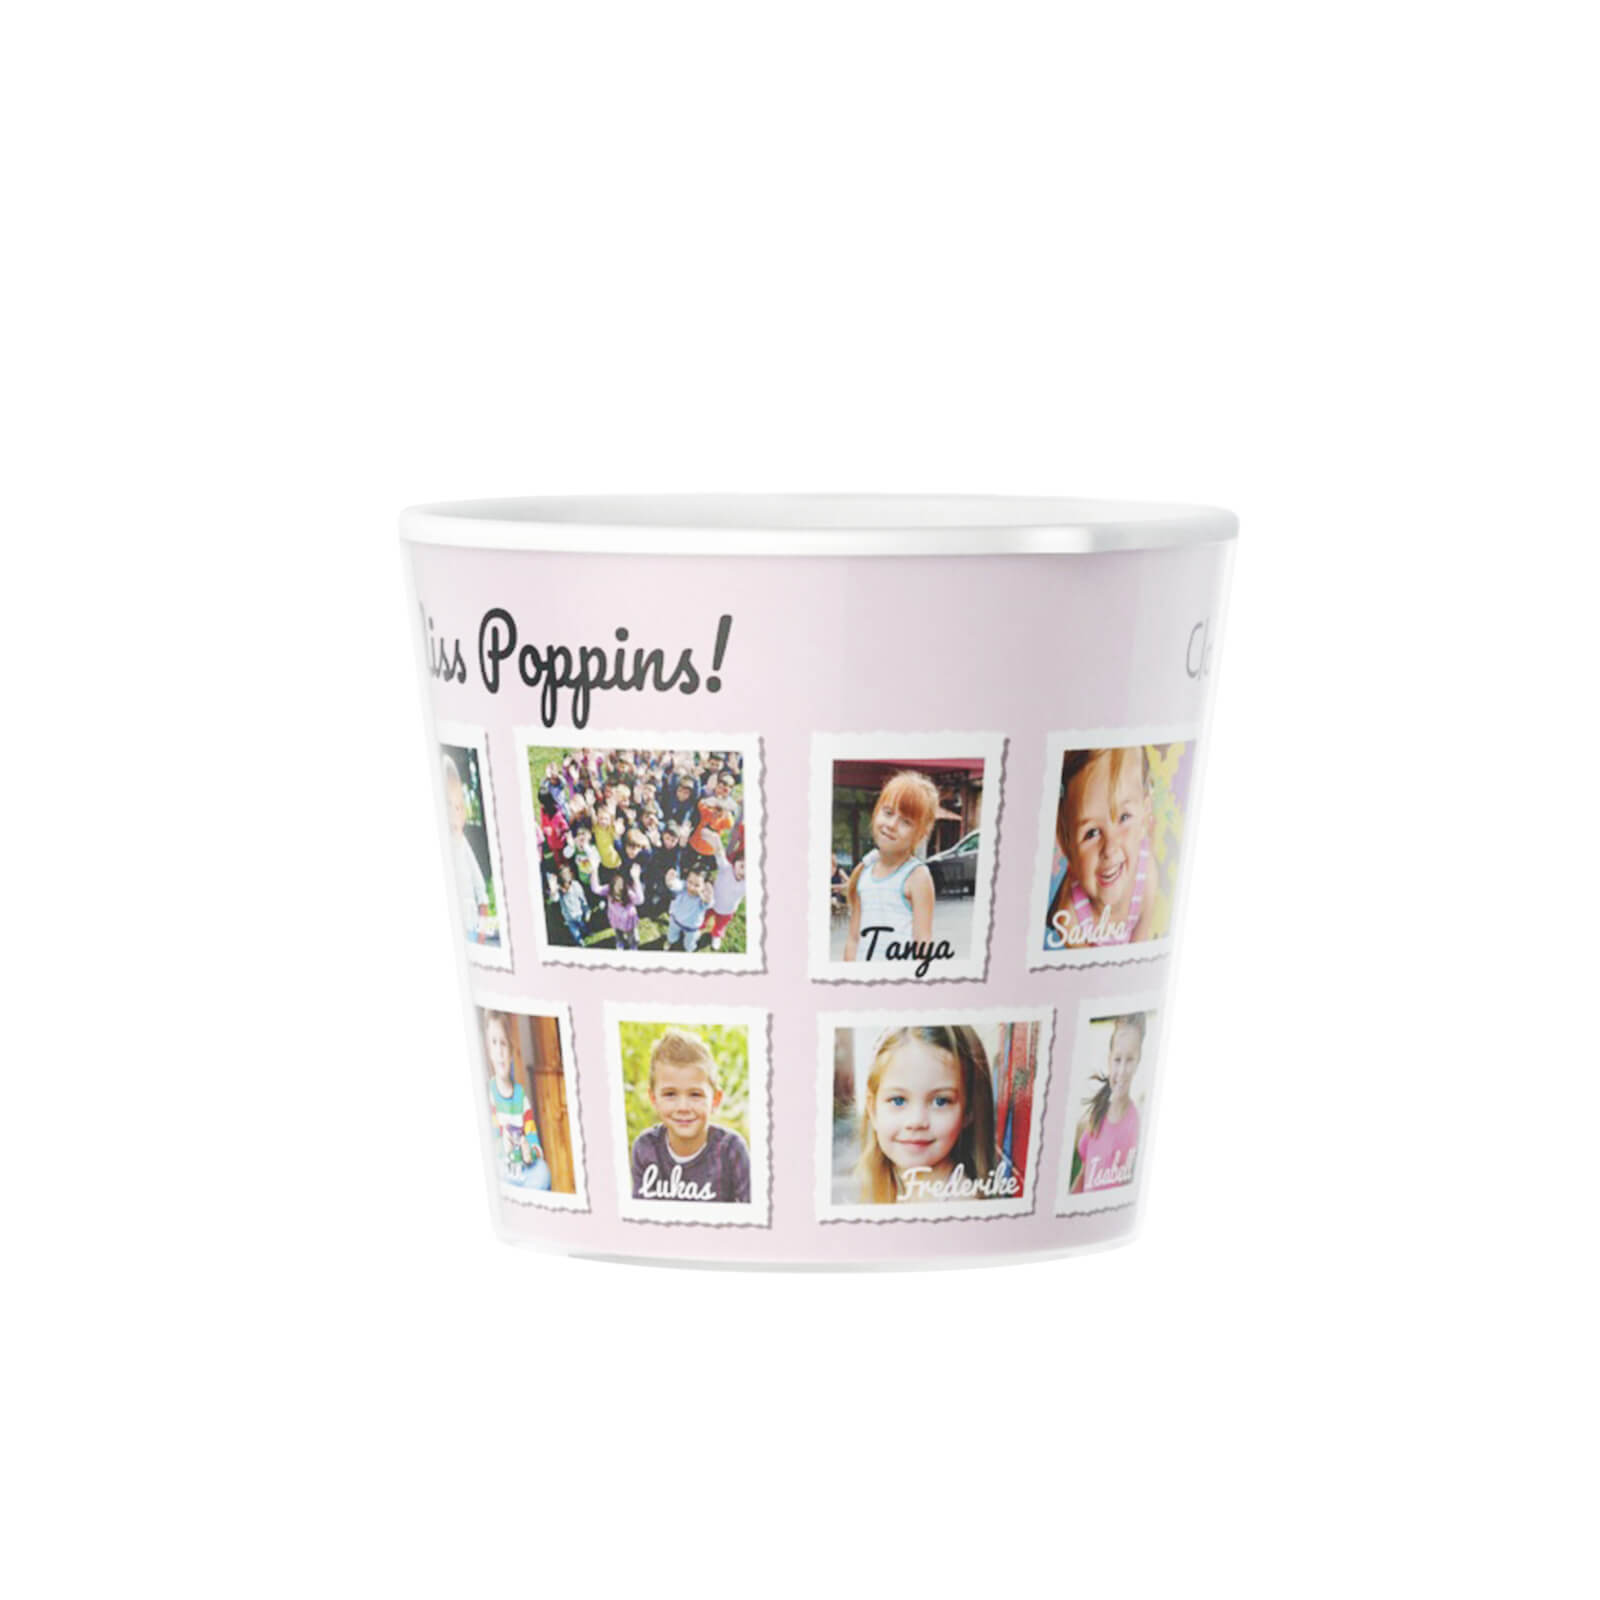 Kindergarten Pot 16 Photos Plant pot with Photo